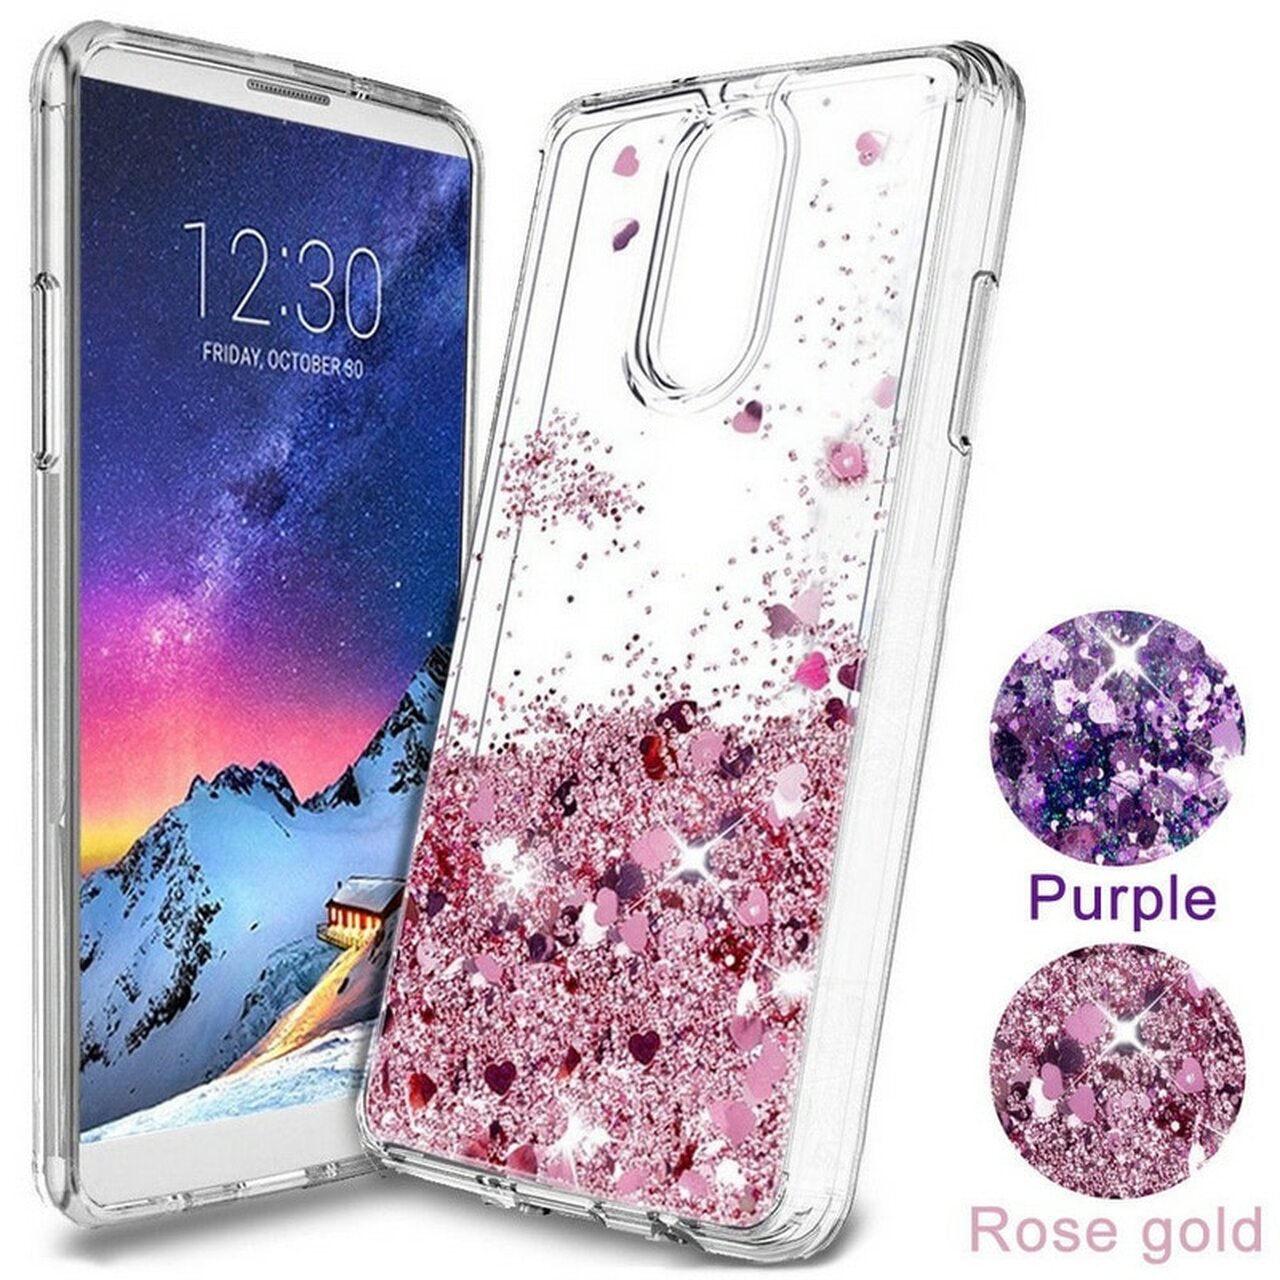 promo code d9c5d 2689e Phone Case For Oneplus 6 6T 5T Glitter Stars Heart Liquid Quicksand Case  Soft Silicon Clear Back Cover for One Plus 5 5T 6 Shell